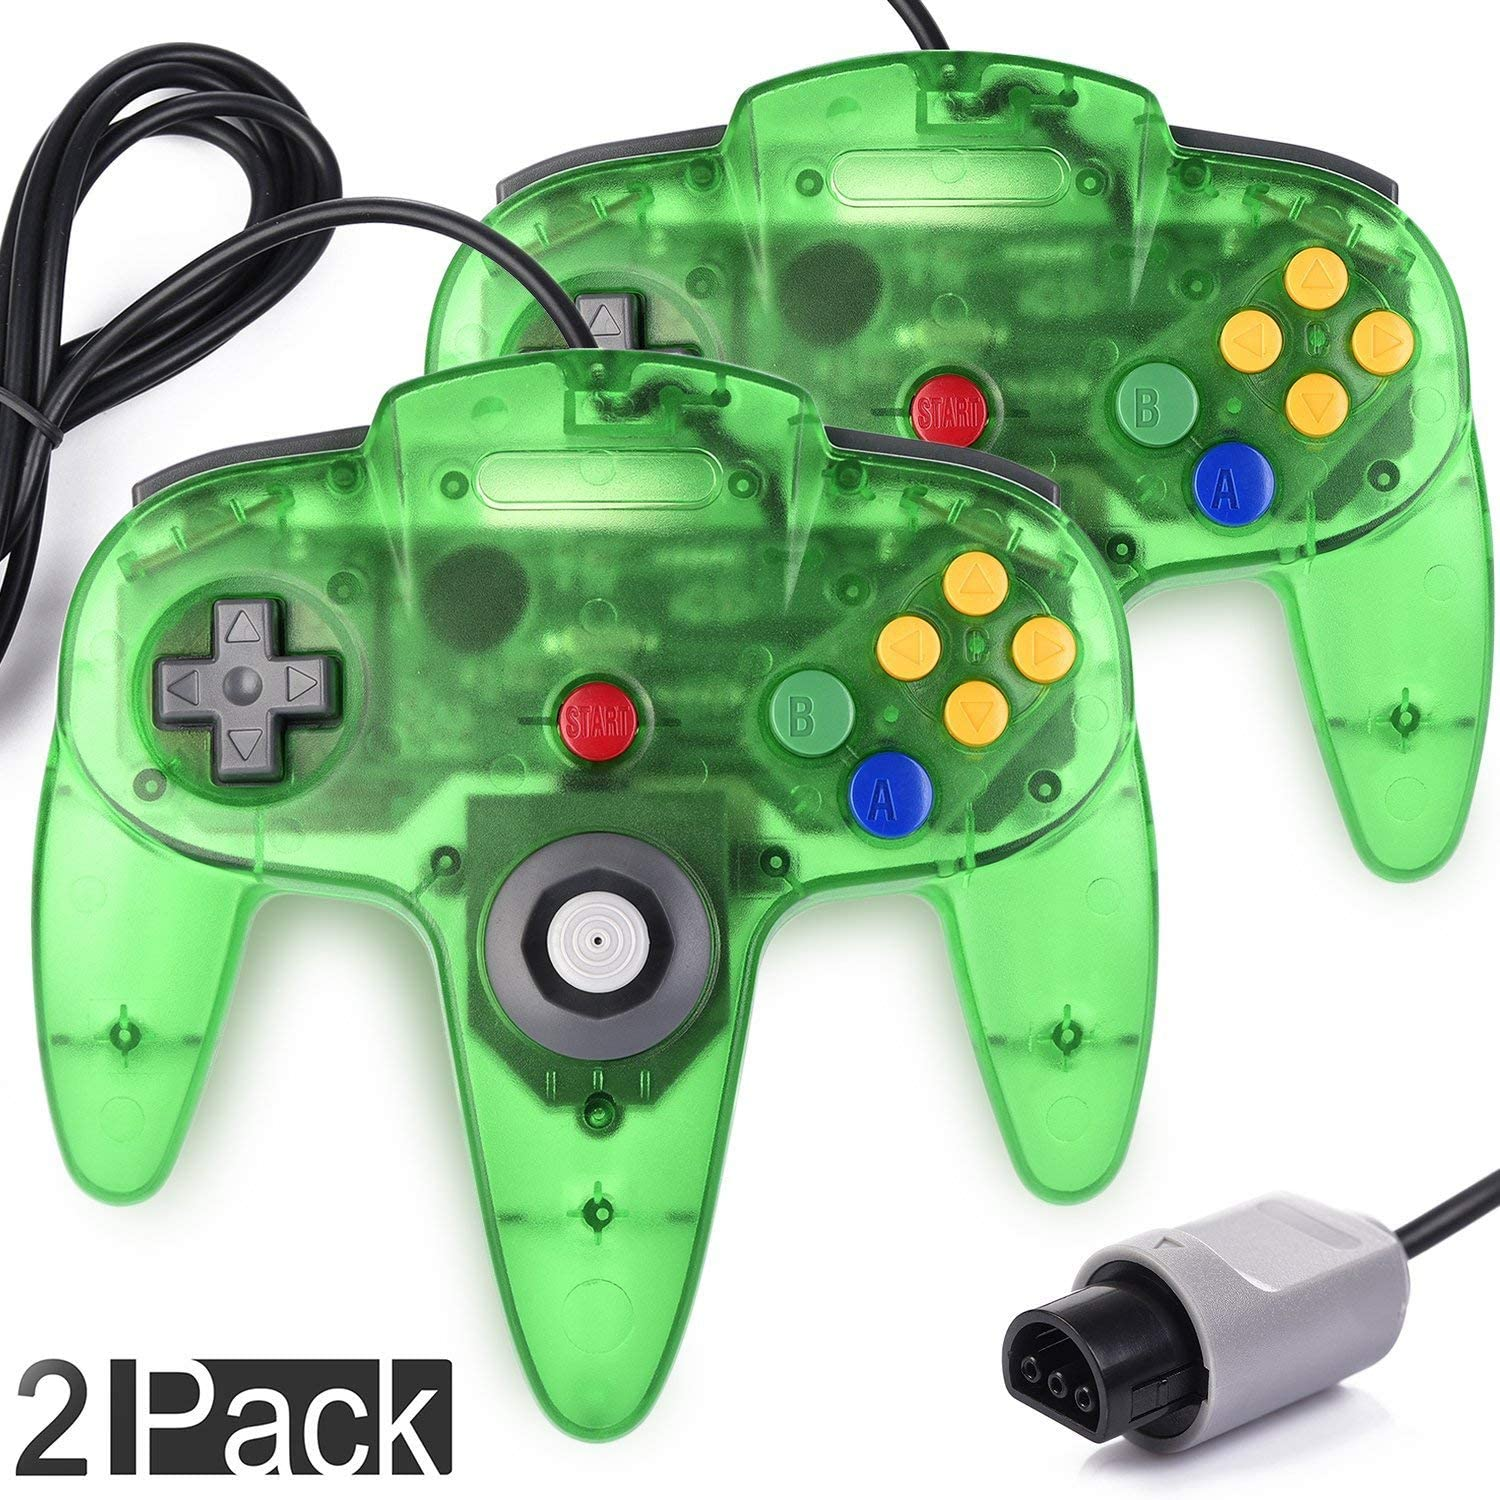 2 Pack Classic Controller for N64 Gaming, miadore Wired Retro Game Pad Joystick Remote Joypad for N64 Video Game System N64 Console - Jungle Green